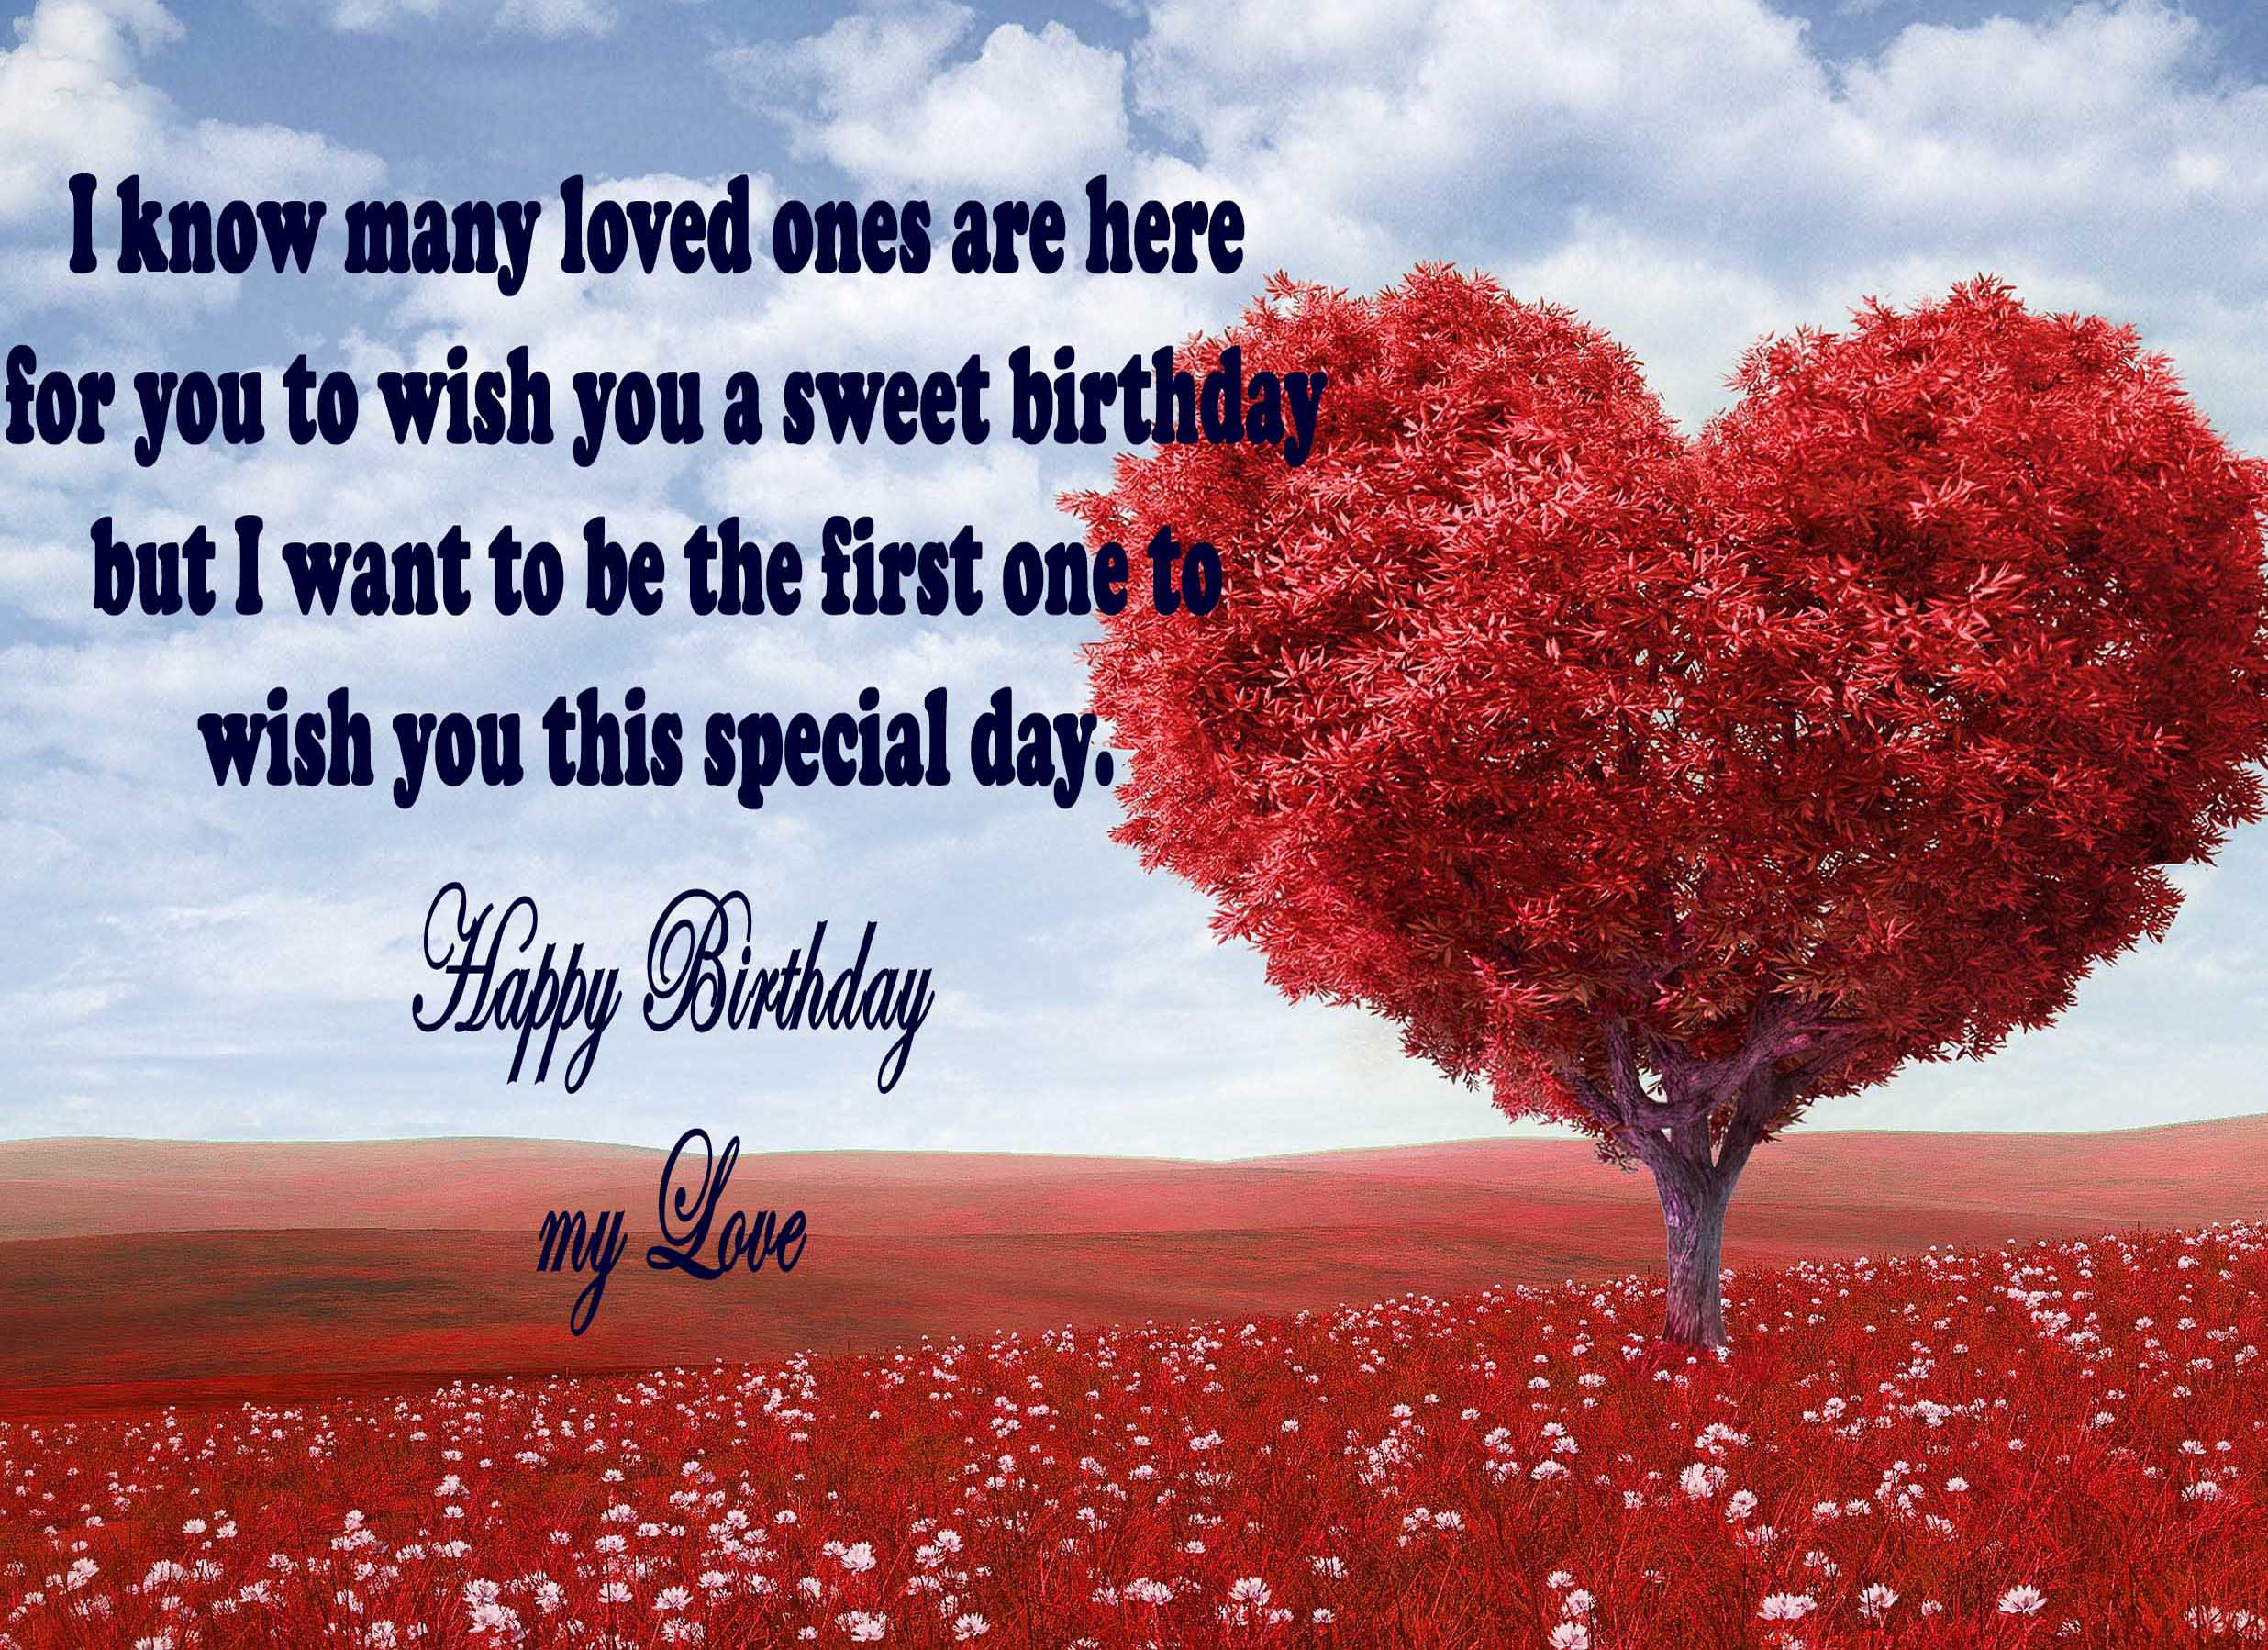 birthday message for special one ; Romantic-Birthday-Wishes-With-Wondrous-Message